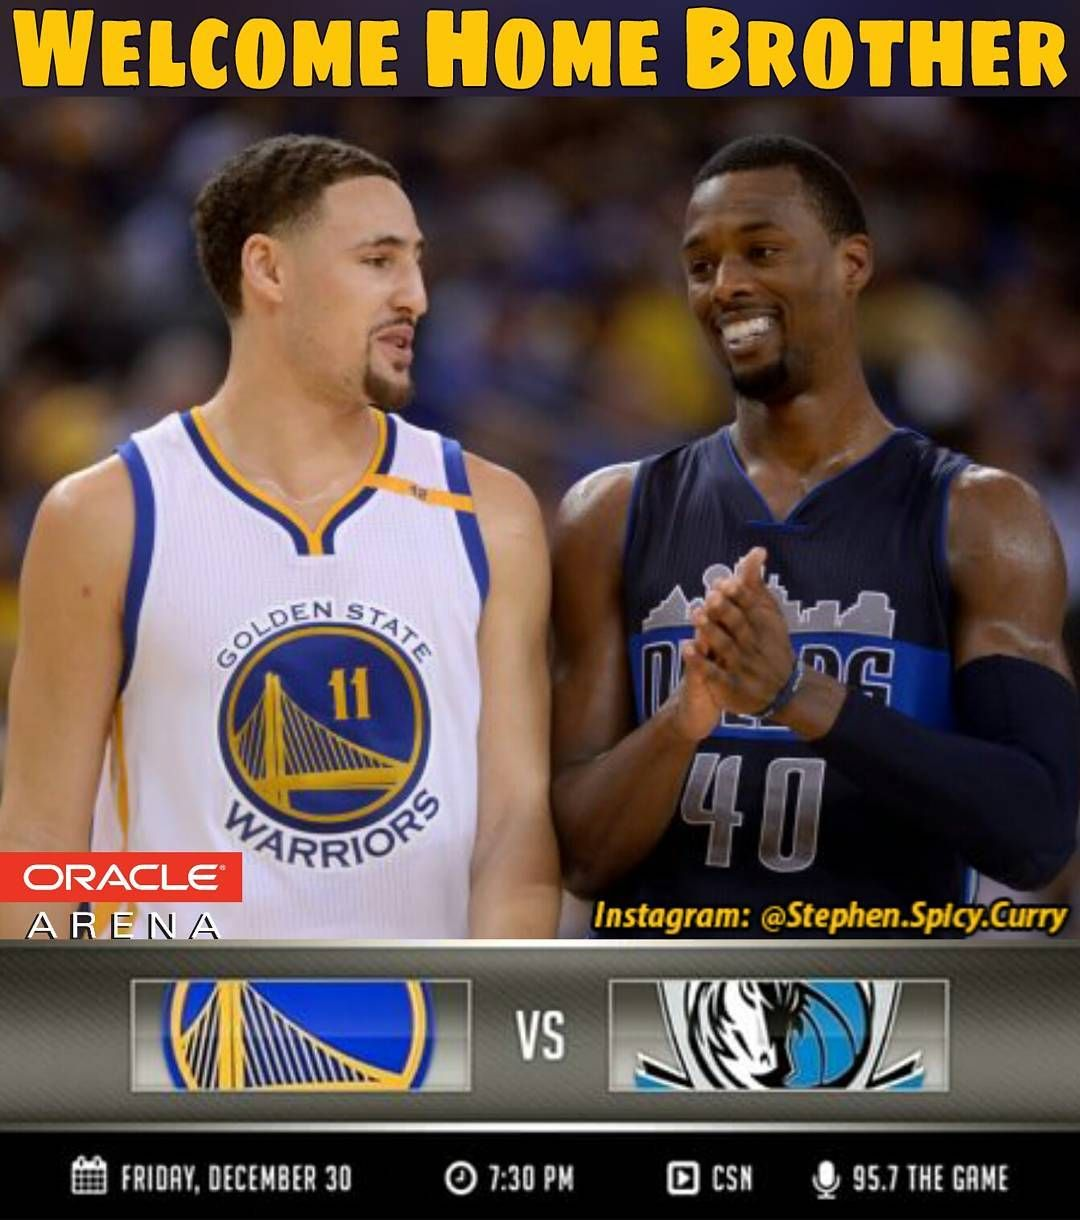 Harrison Barnes and Andrew Bogut come back to Oracle